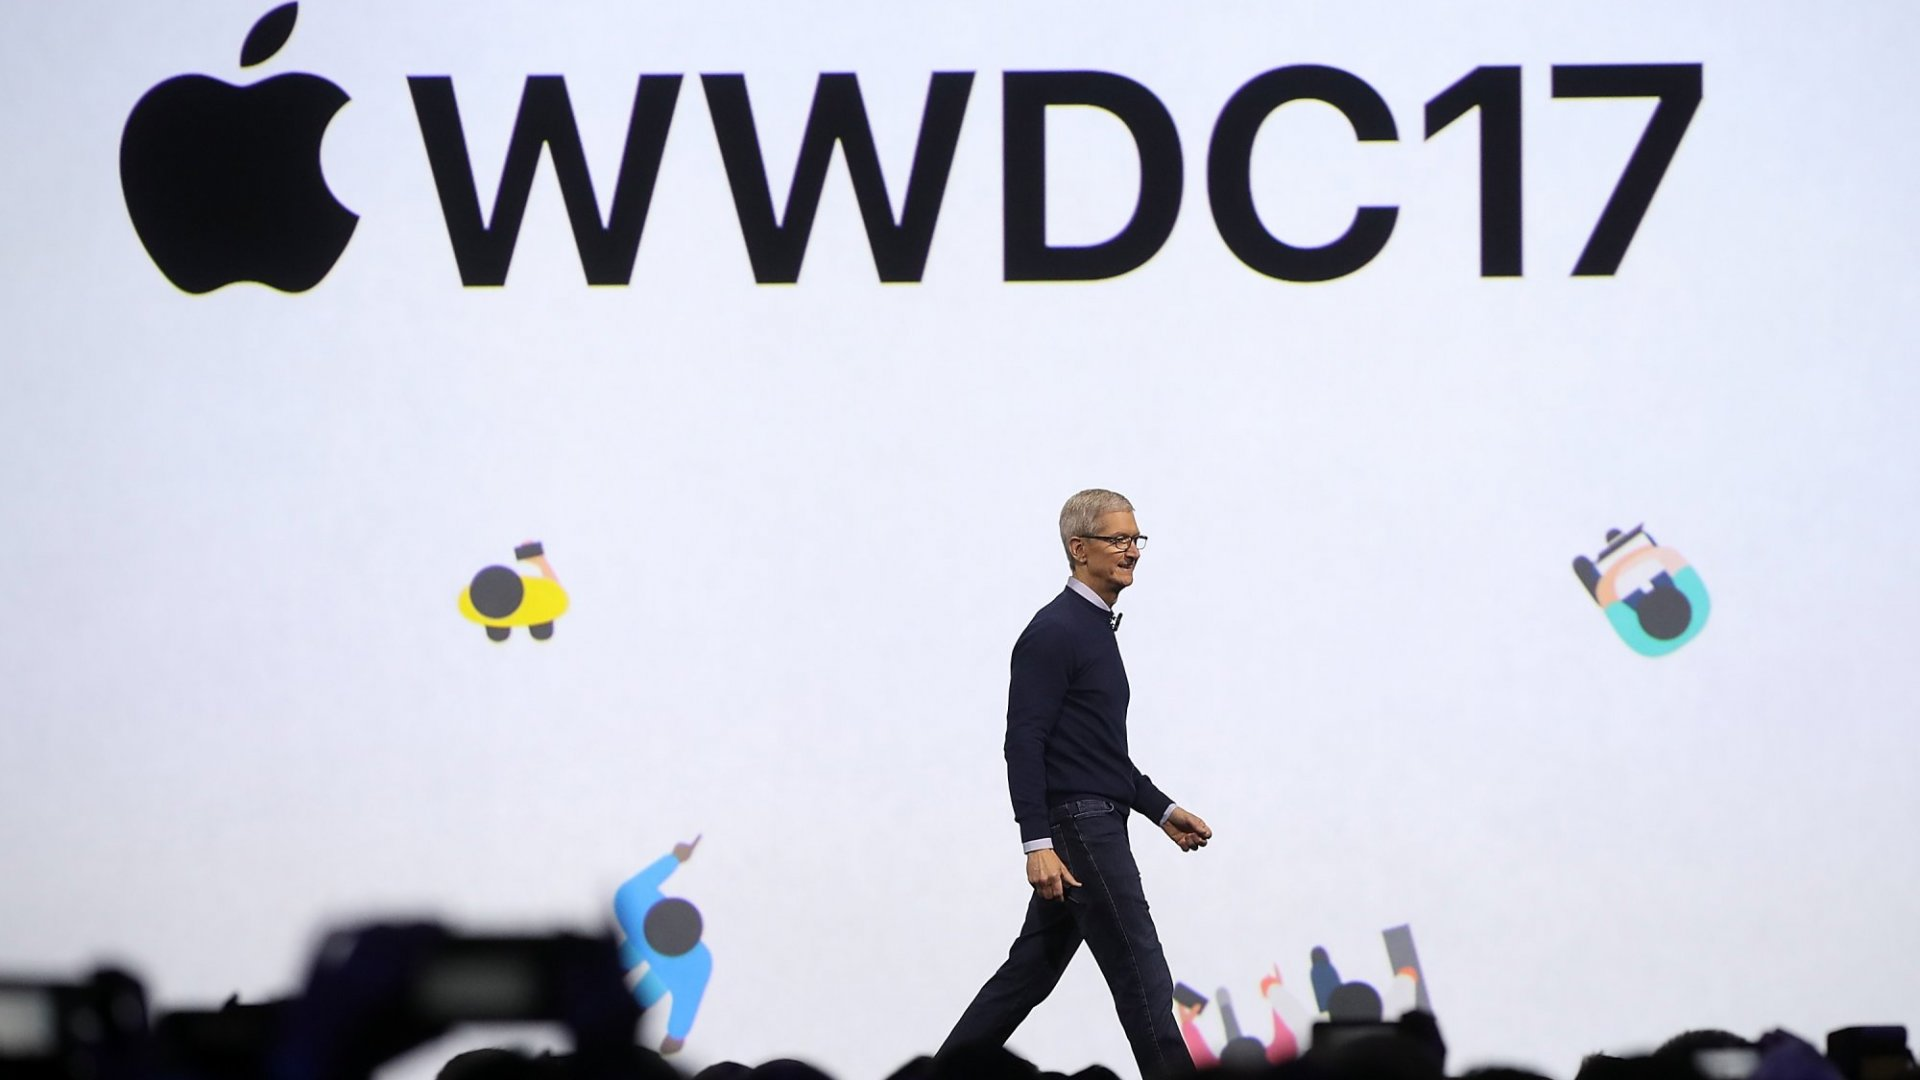 Tim Cook Credits Apple's Success to Two Basic Principles